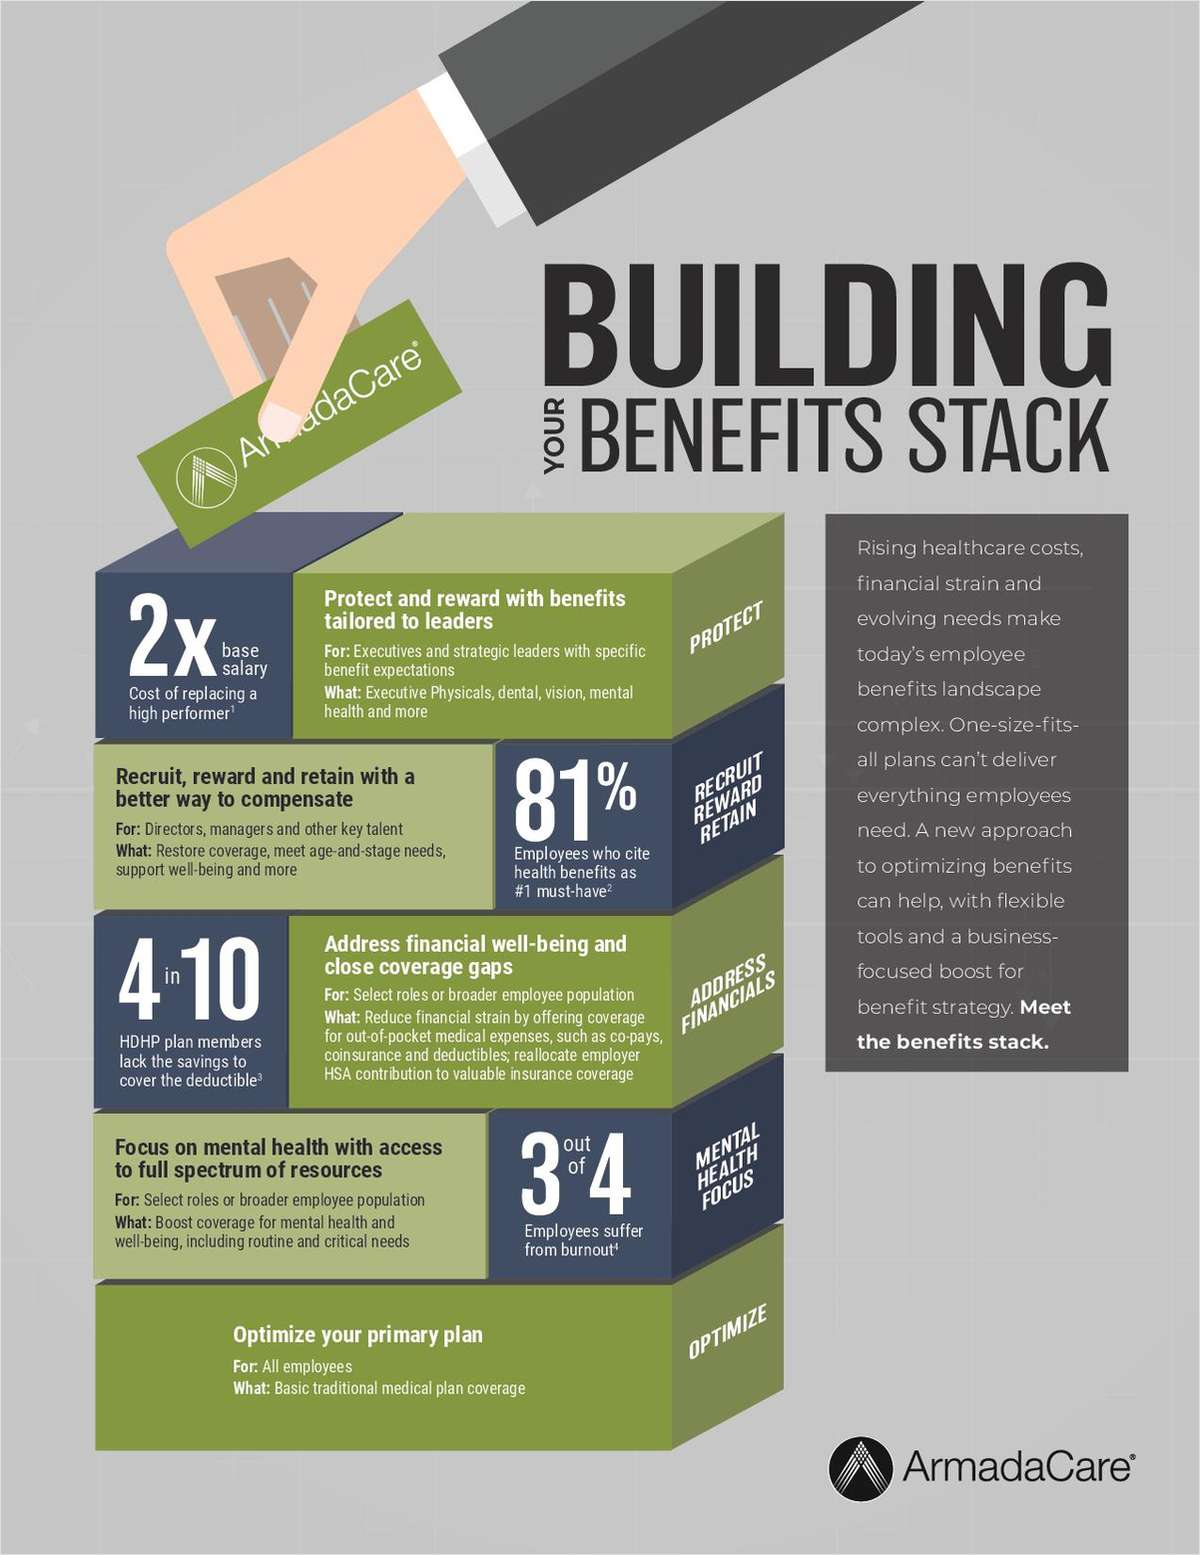 Building Your Benefits Stack